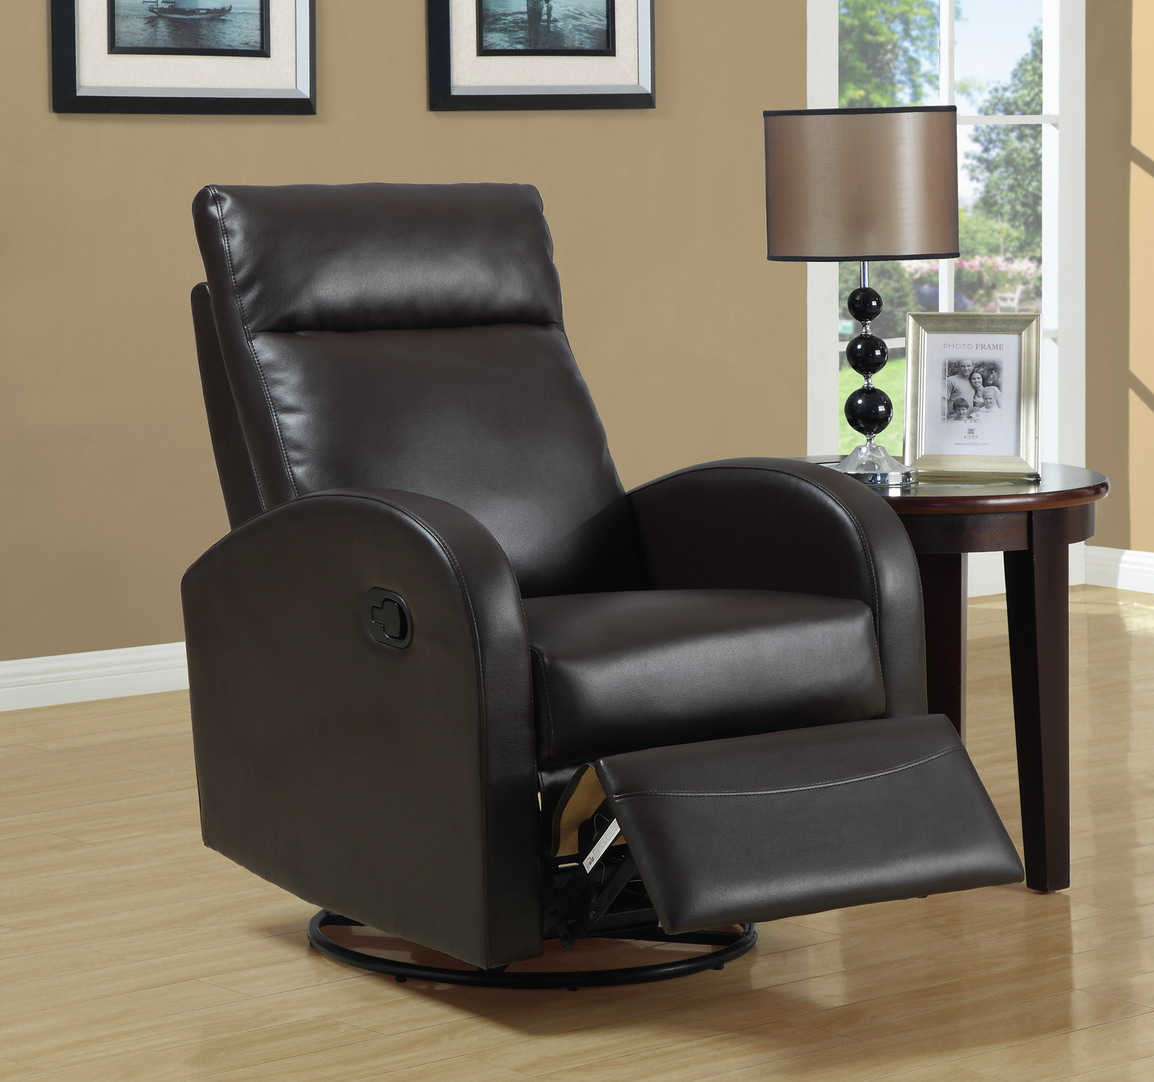 Reclining Leather Swivel Chair in Brown